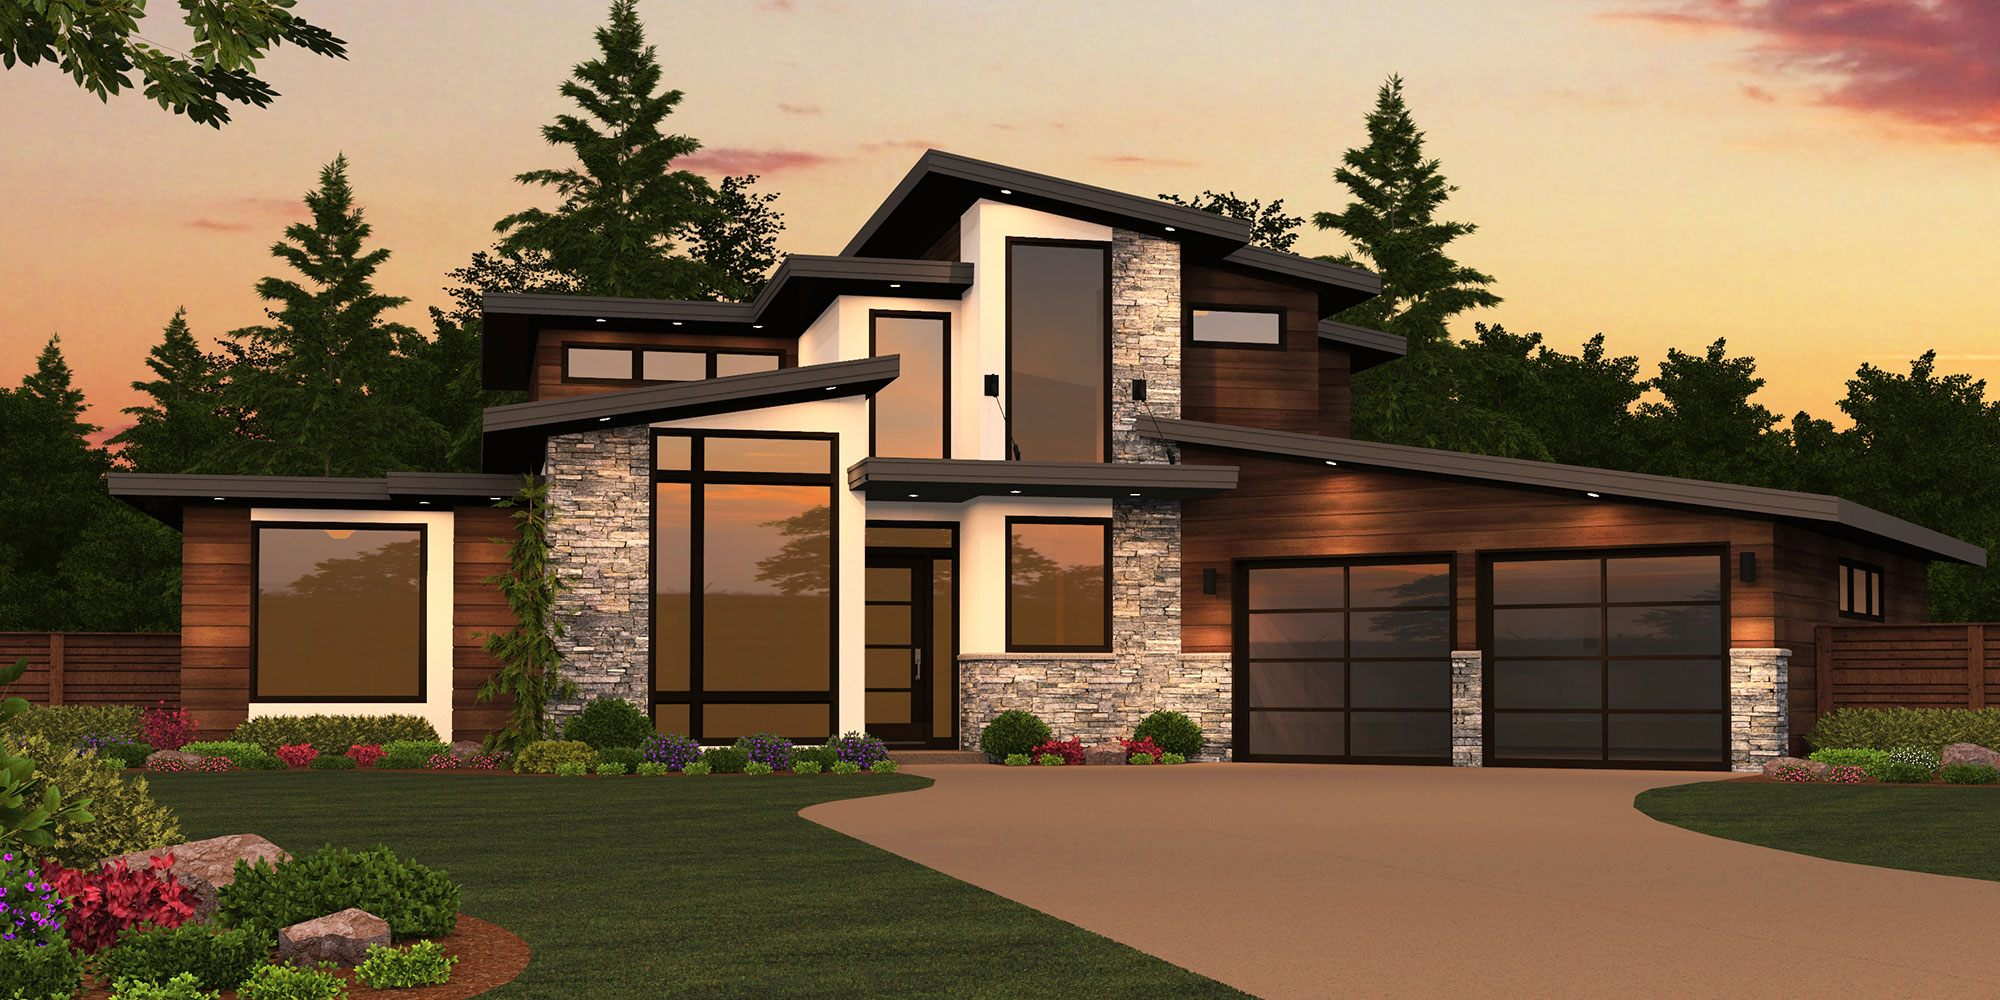 Modern House Plans   Home Designs  Shop Floor Plans with Photos Sting X 16A